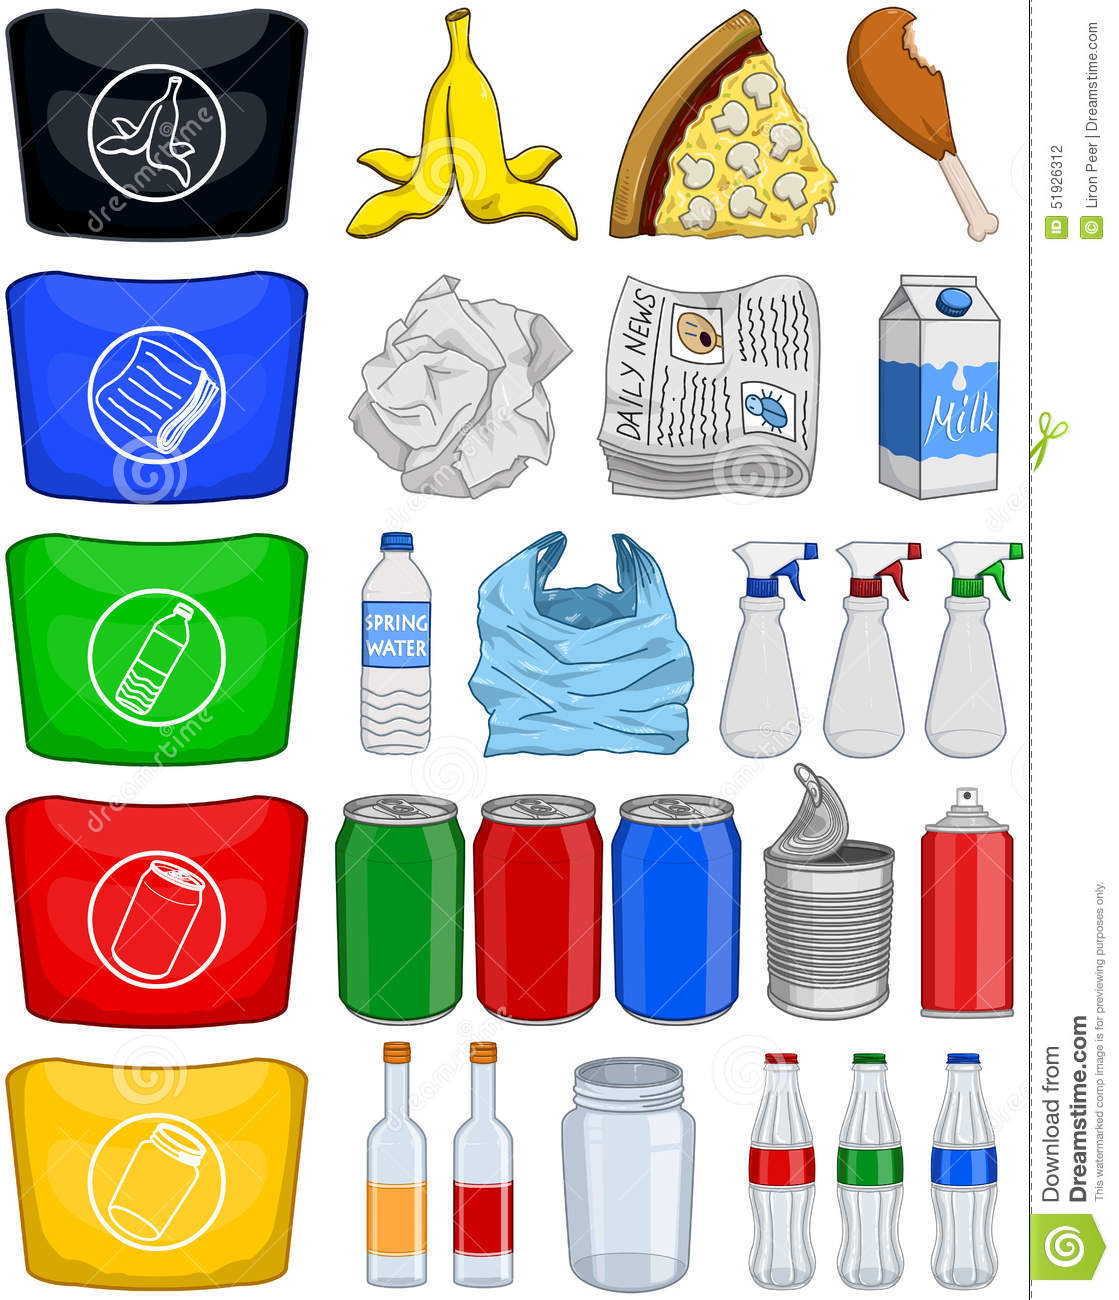 Food Bottles Cans Paper Trash Recycle Pack Stock Vector